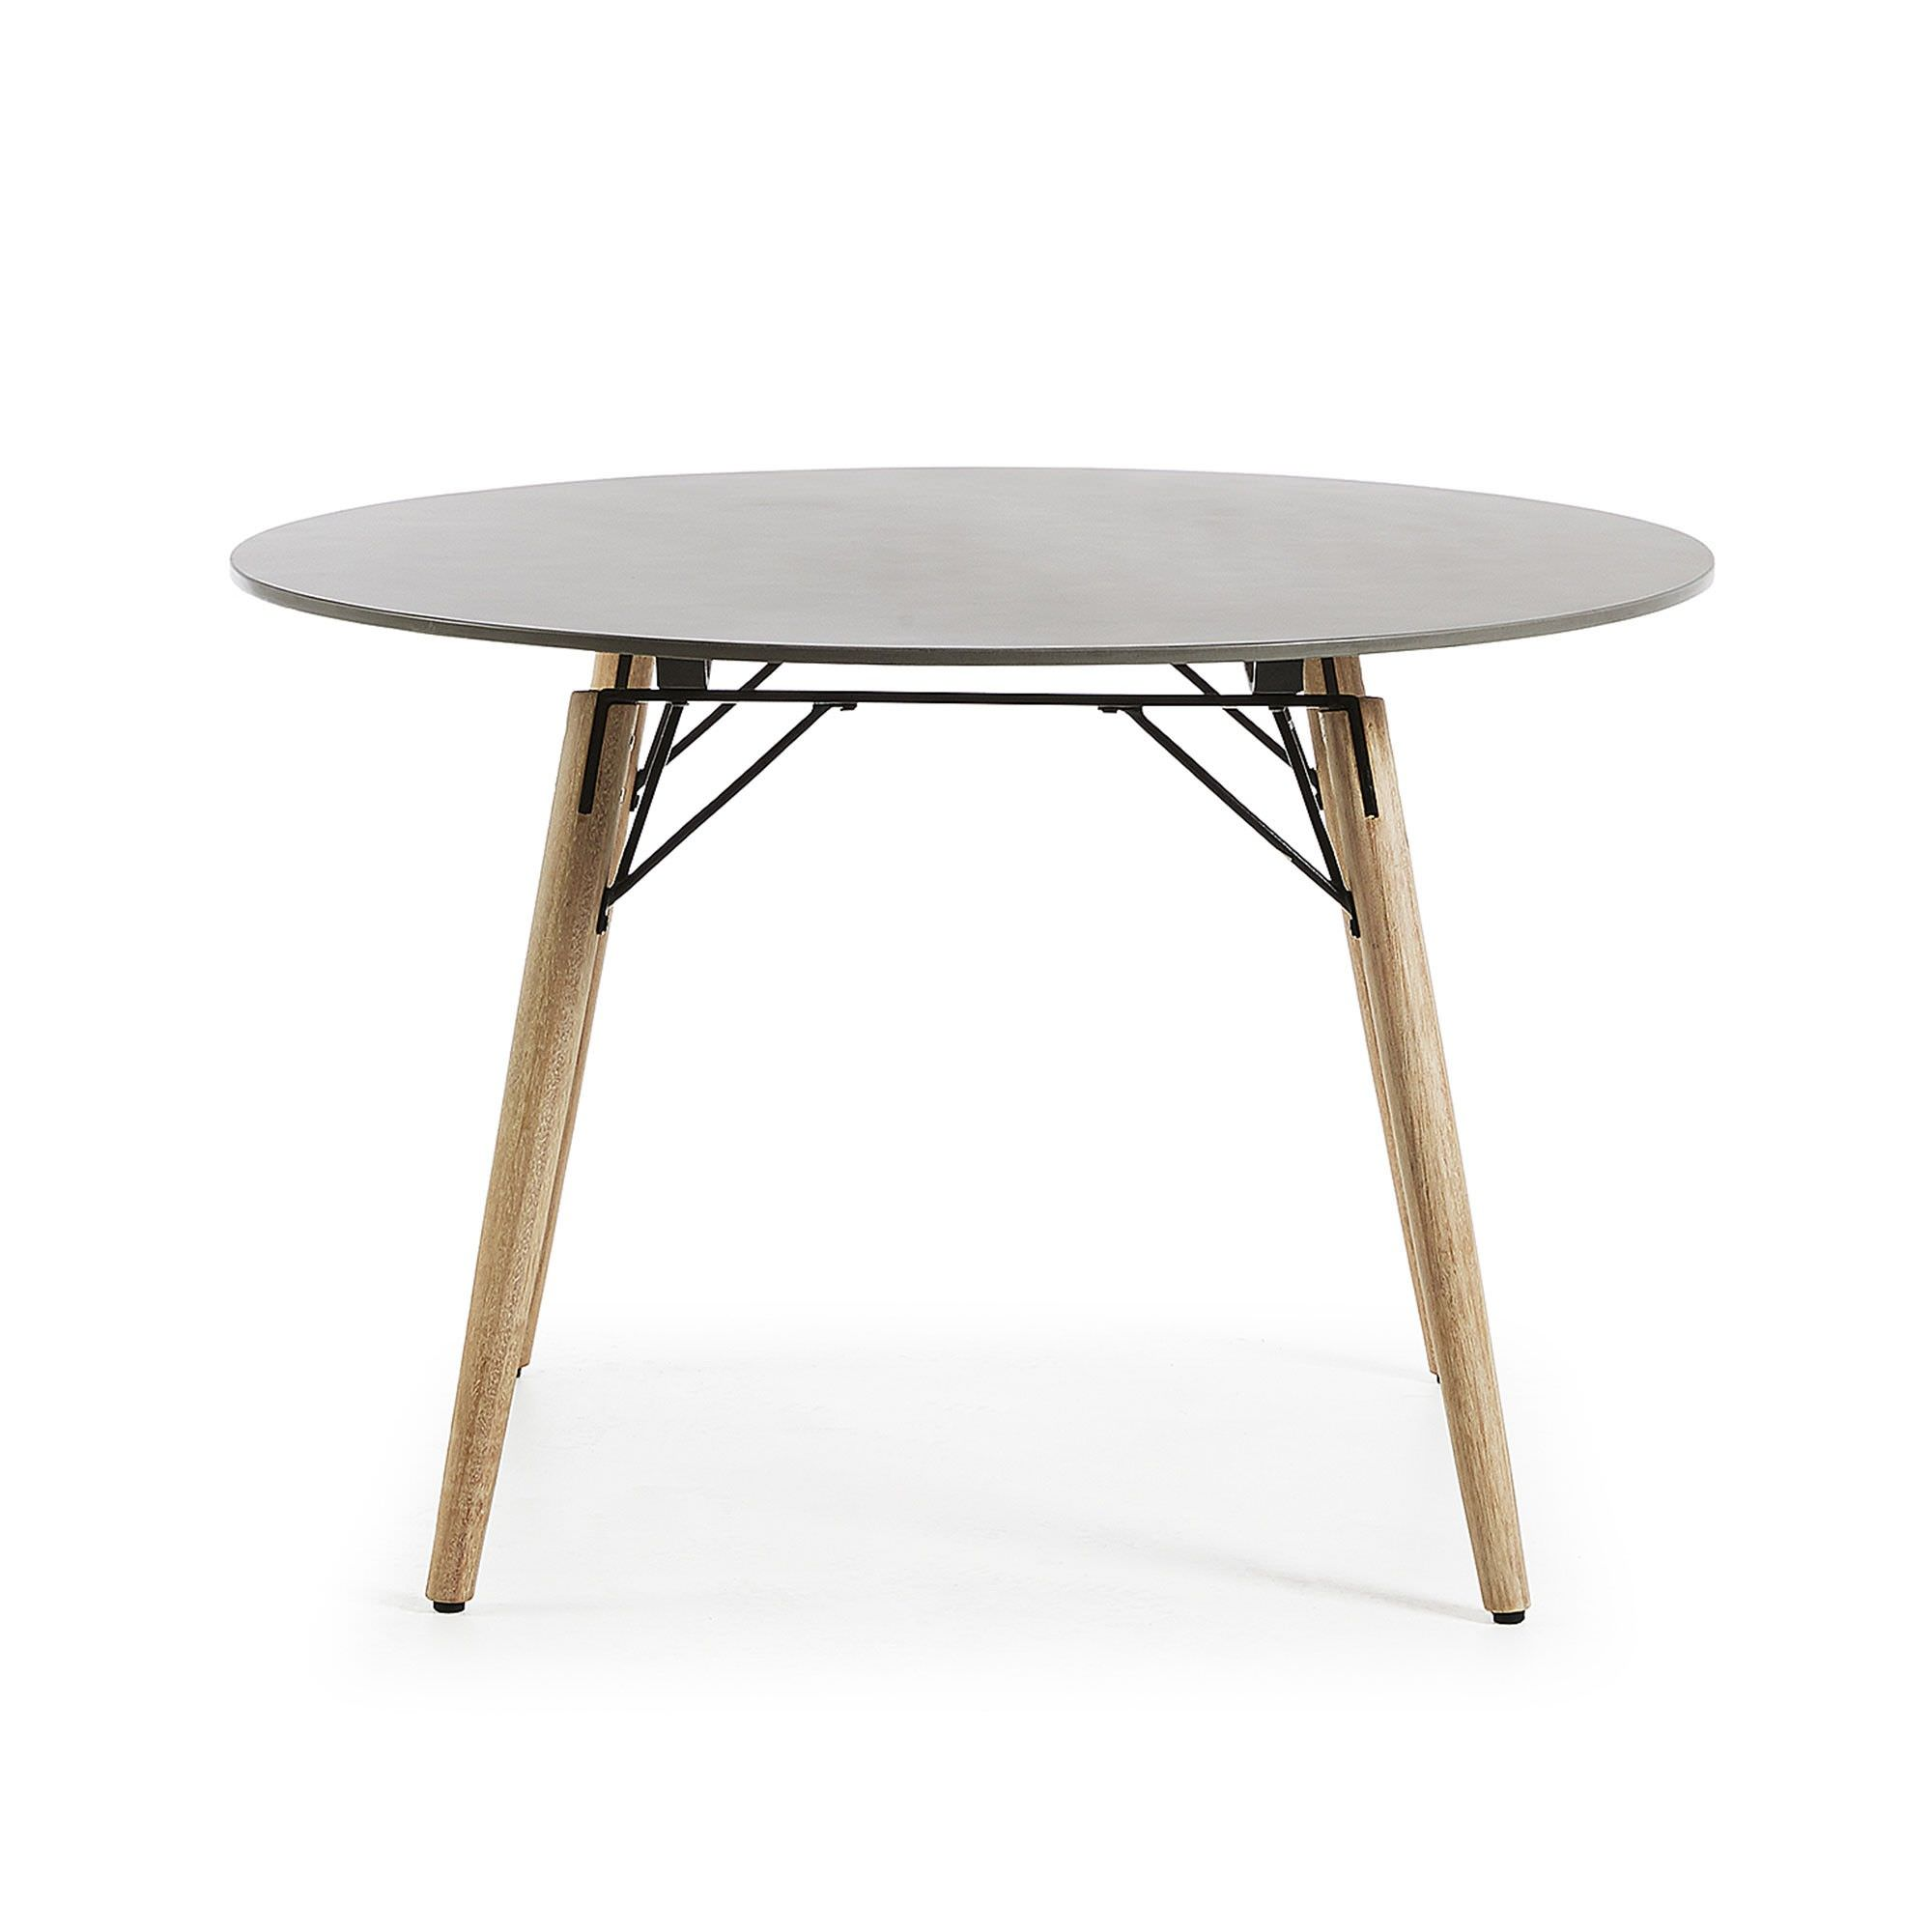 Tatum Polycement Top Eucalyptus Timber Indoor / Outdoor Round Dining Table, 120cm